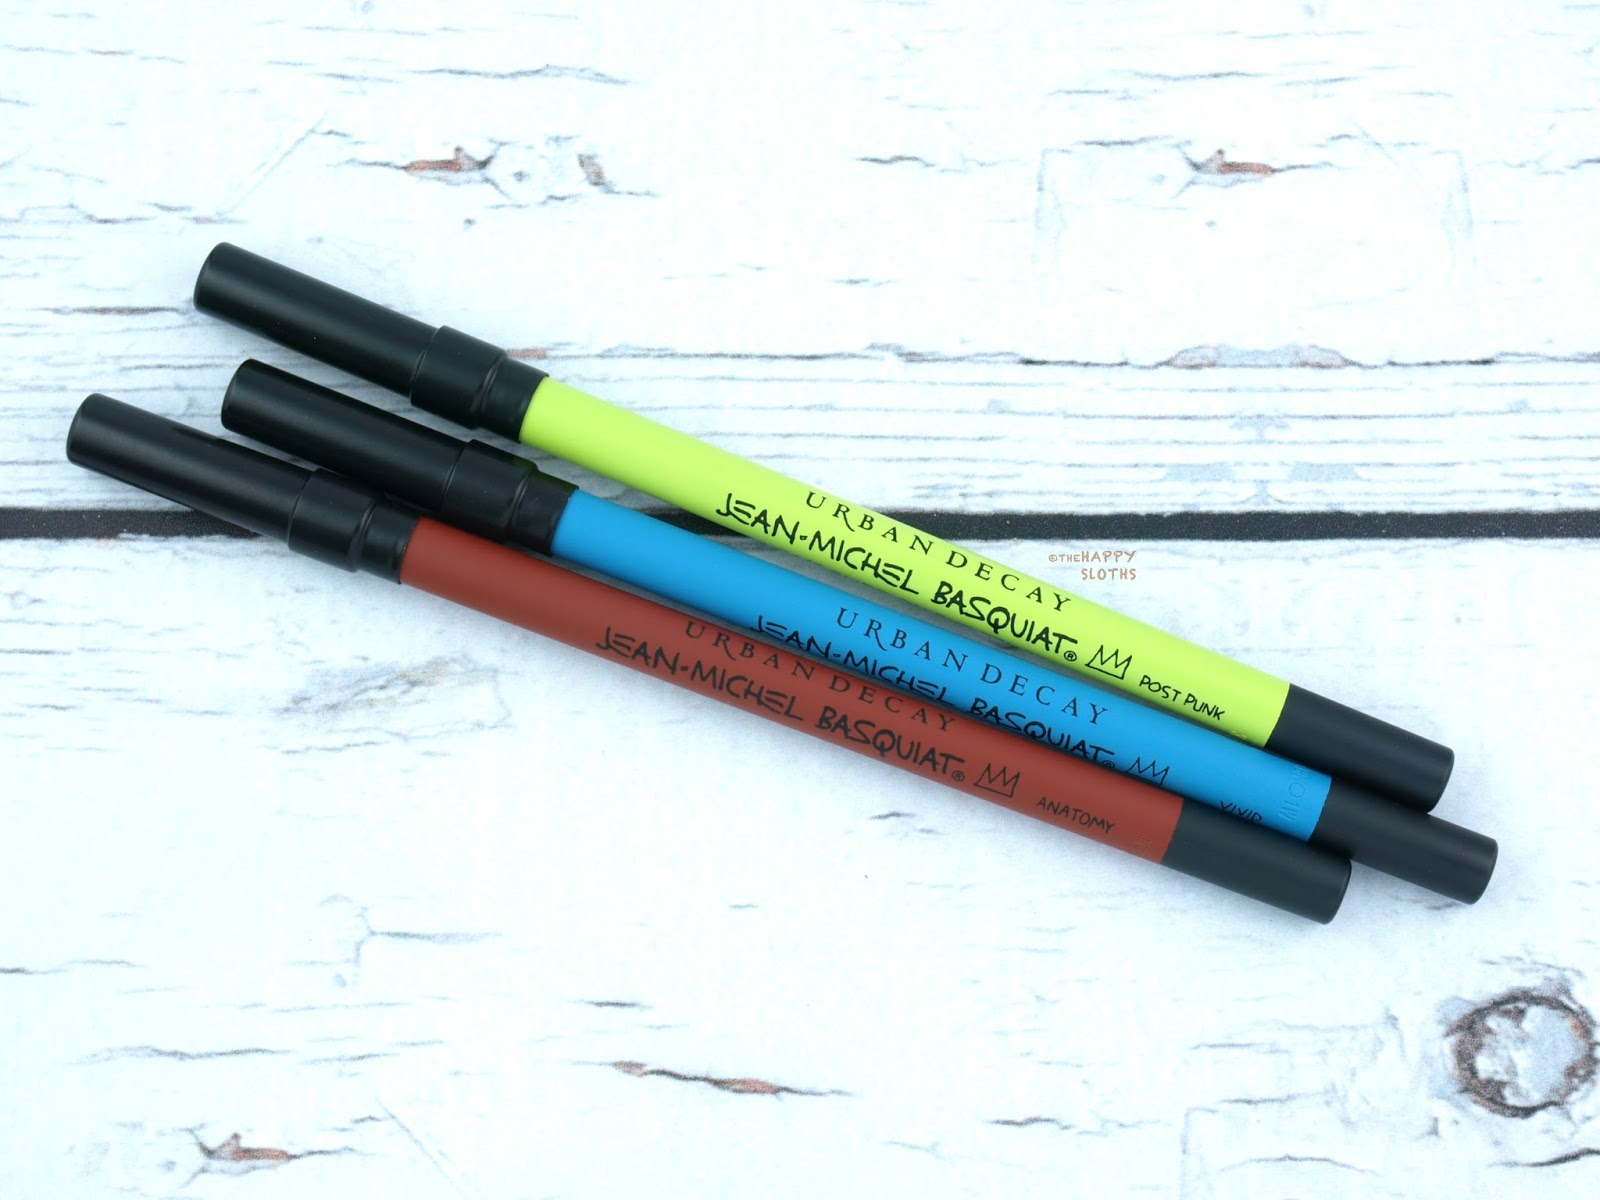 Urban Decay x Basquiat Collection | 24/7 Glide-On Eye Pencil: Review and Swatches